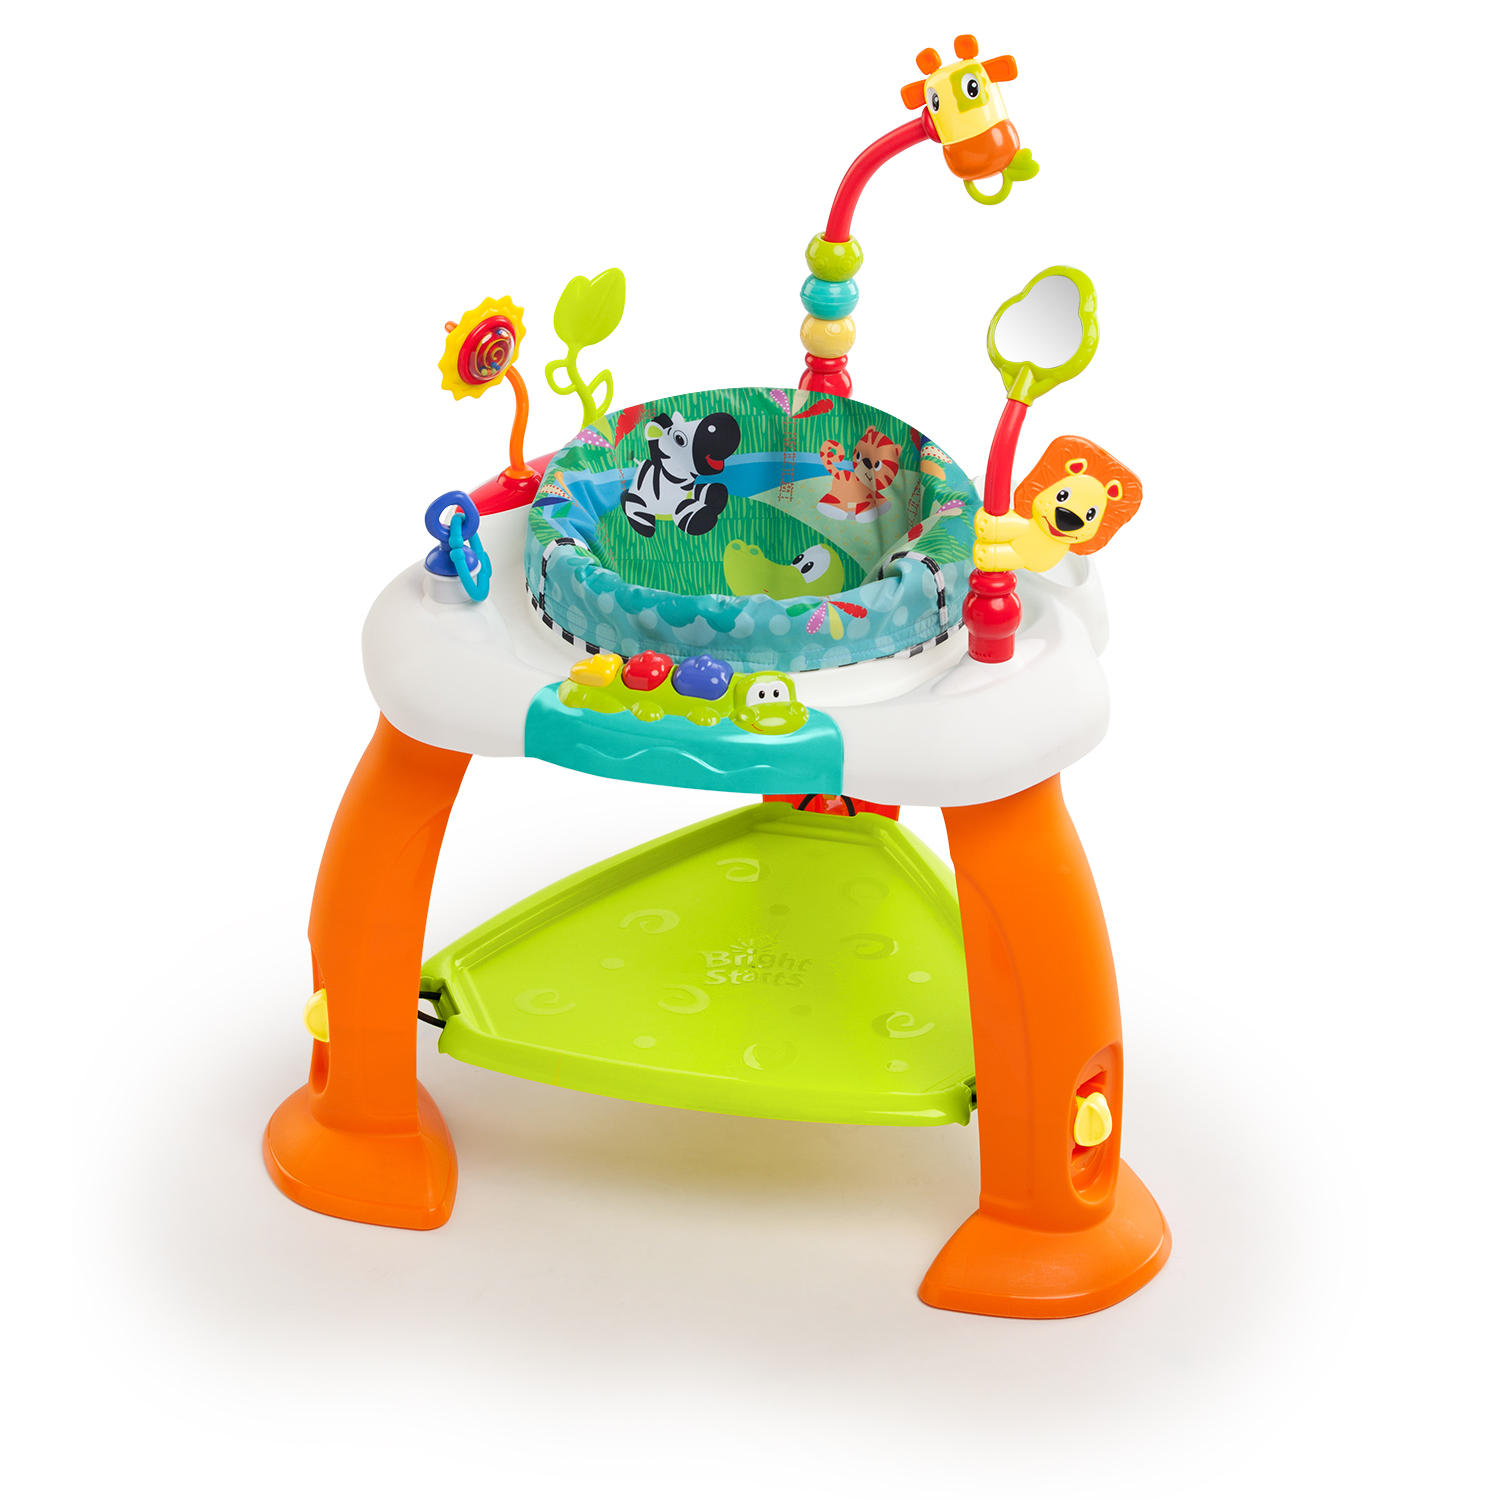 BabyBjorn Flying Friends Toy for Bouncer Walmart